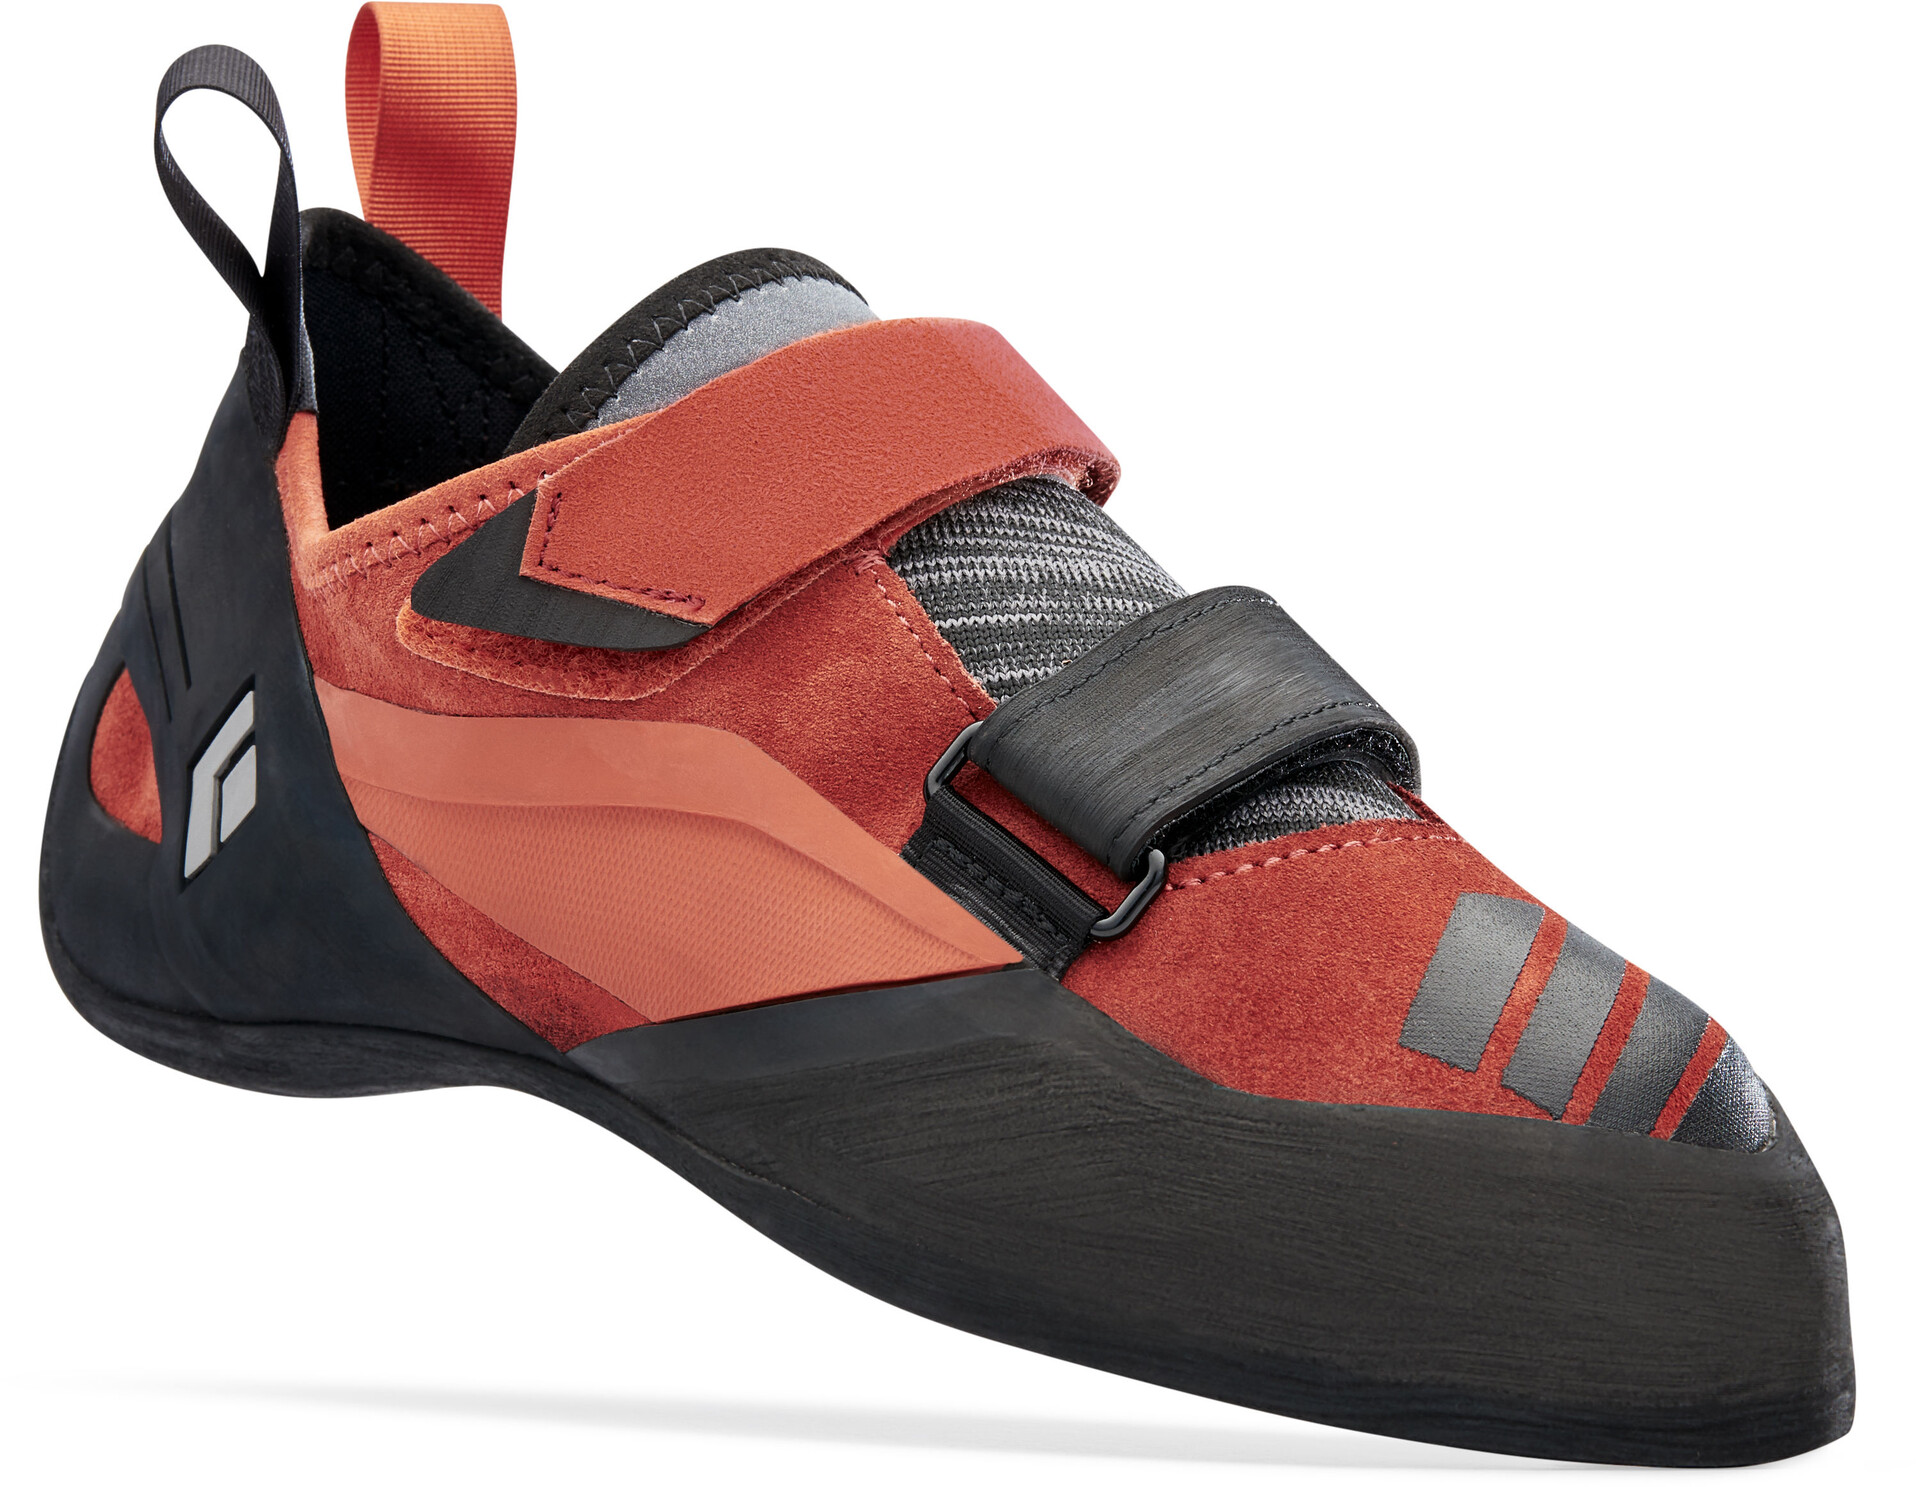 Klettergurt Mammut Focus Test : Black diamond focus climbing shoes men rust campz